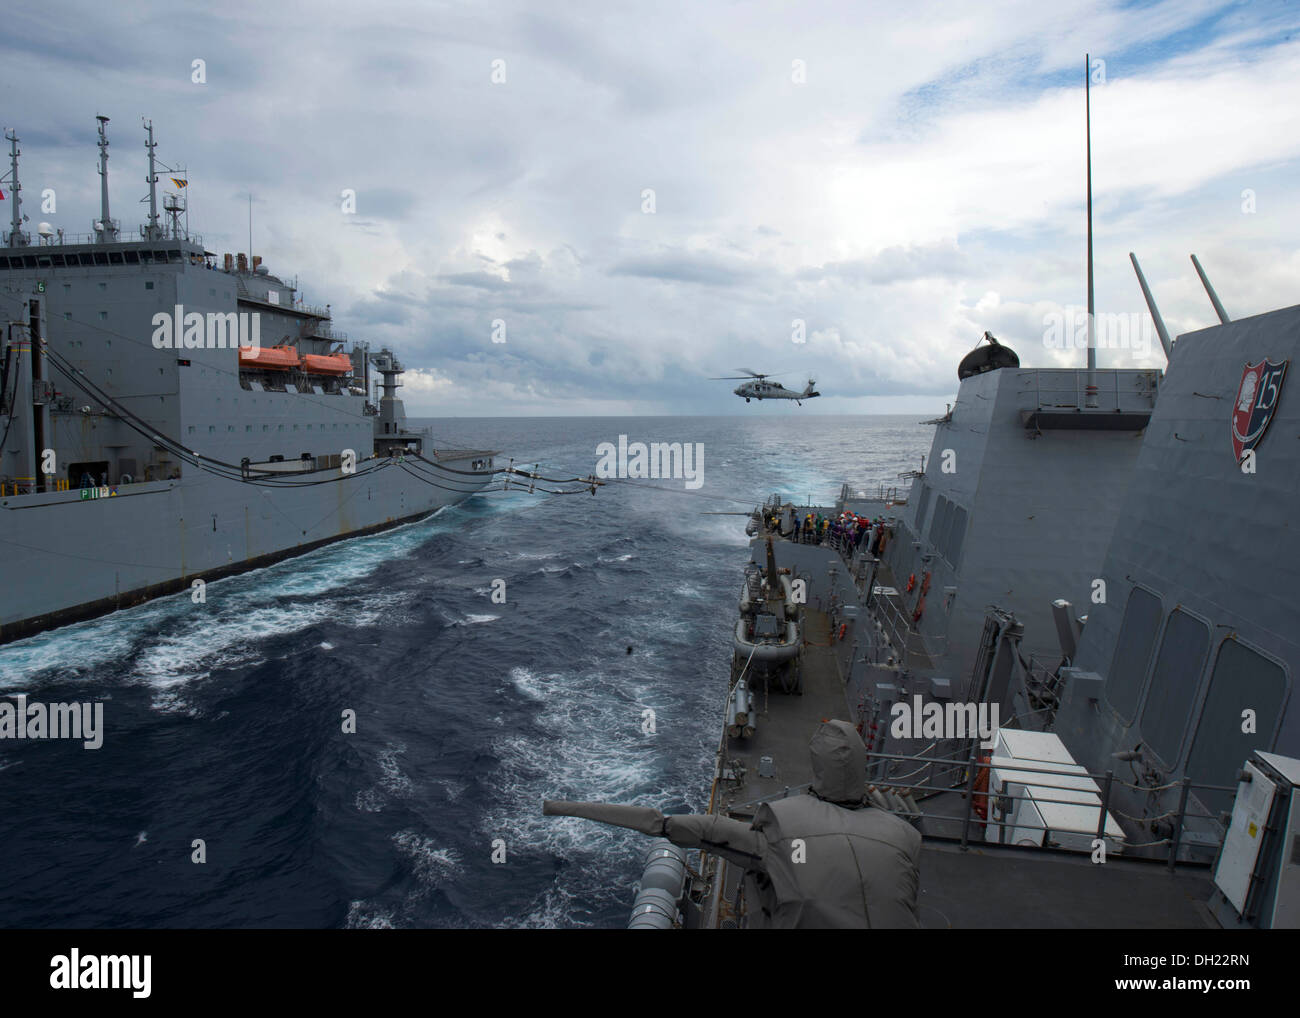 SOUTH CHINA SEA (Oct. 23, 2013) The guided-missile destroyer USS Mustin (DDG 89) conducts a replenishment-at-sea with the Military Sealift Command Lewis and Clark-class dry cargo and ammunition ship USNS Charles Drew (T-AKE 10). Mustin is on patrol with t - Stock Image